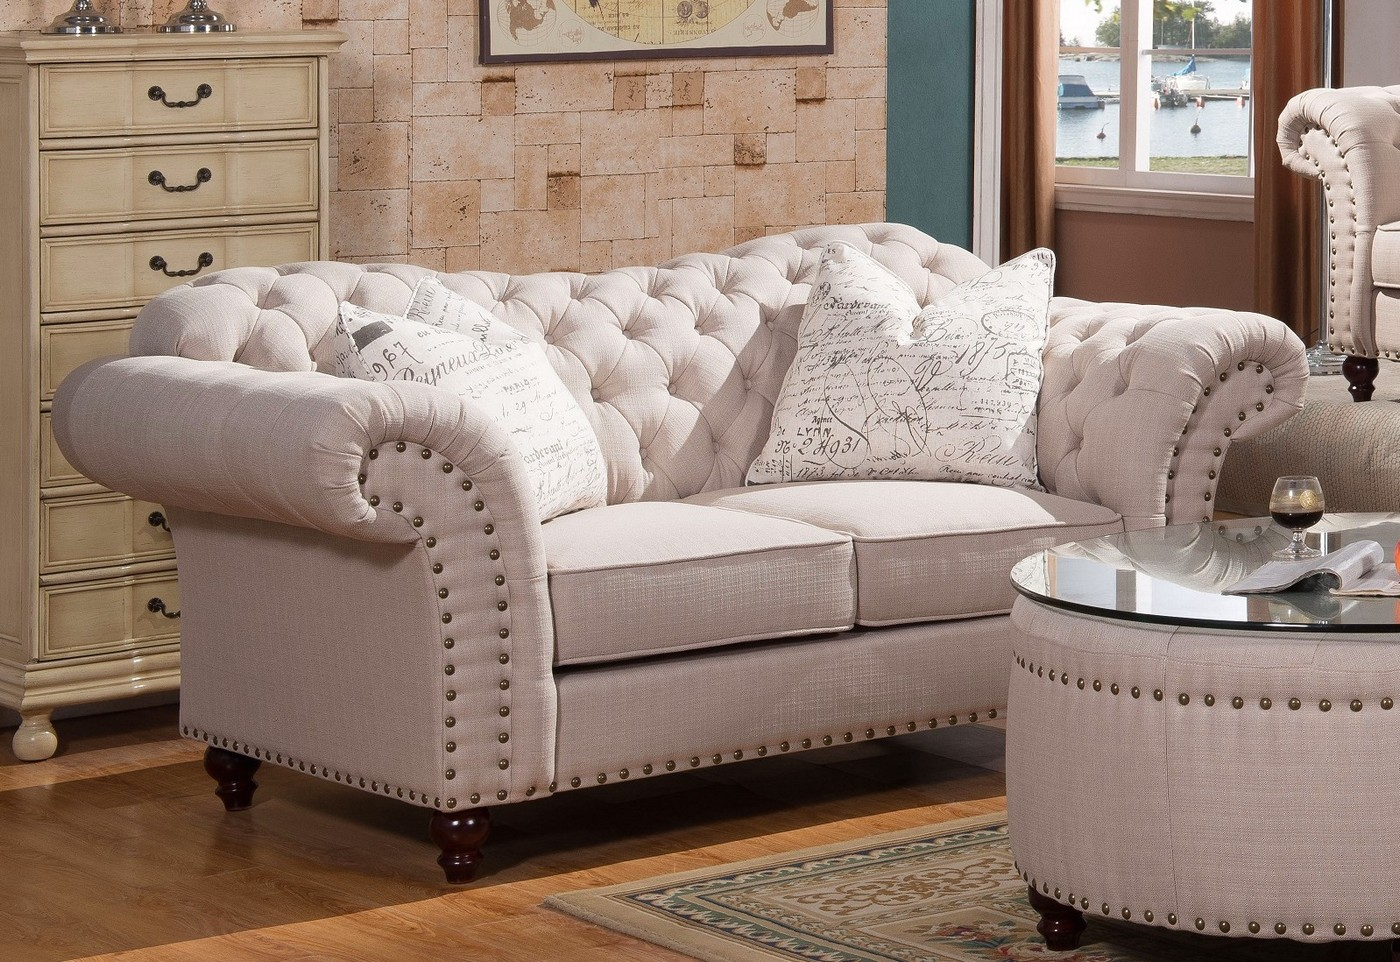 Walton classic sweetheart button tufted sofa loveseat for Tufted couch set